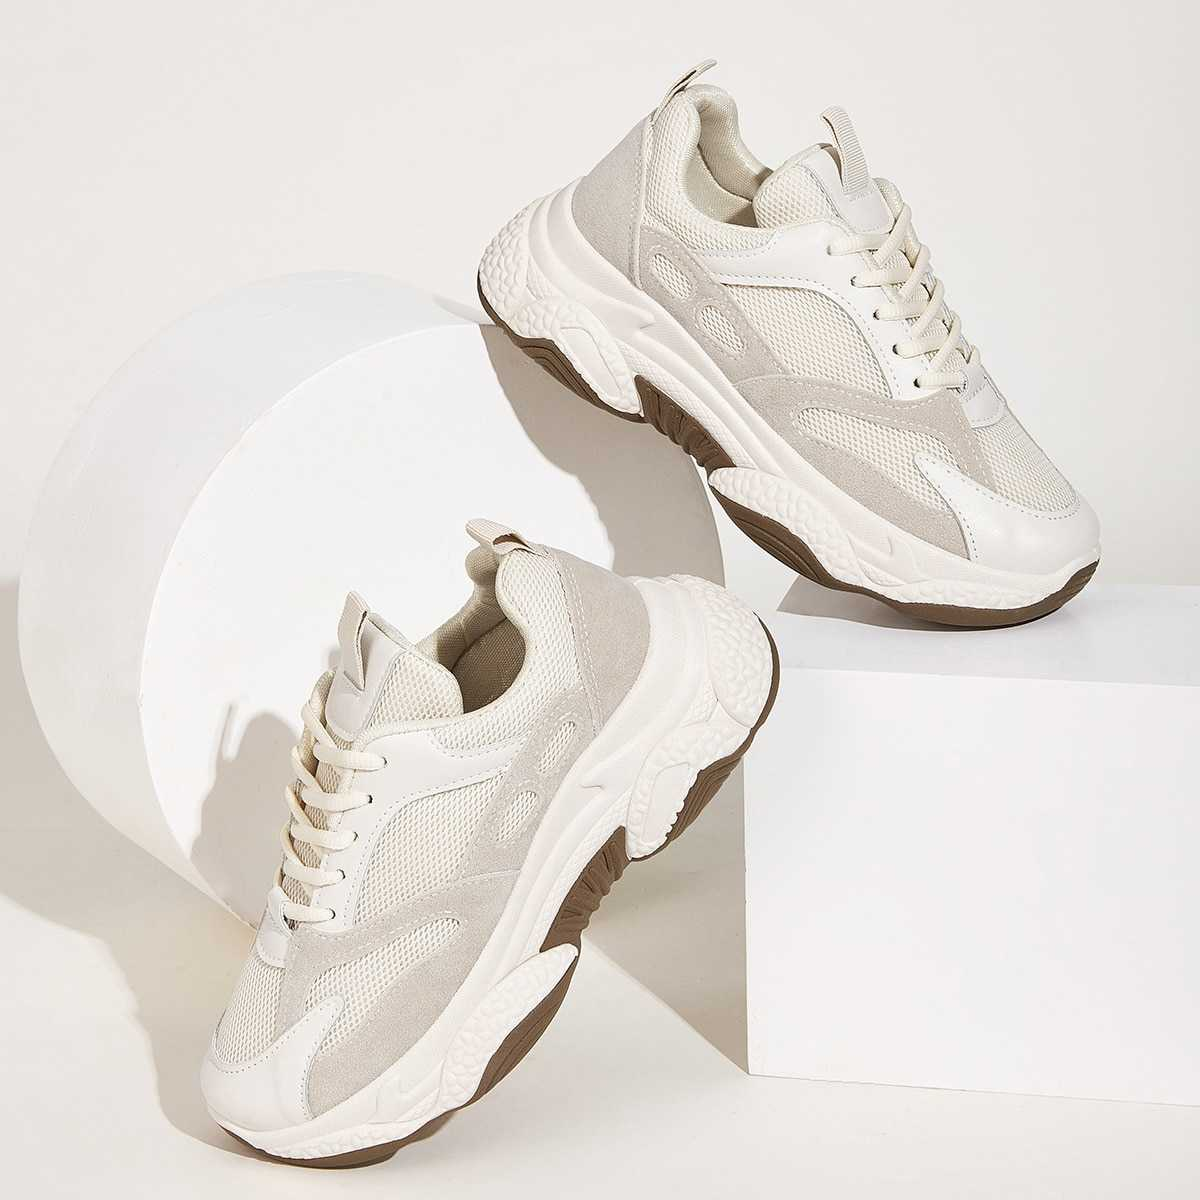 Lace-up Front Chunky Sole Trainers in Grey by ROMWE on GOOFASH